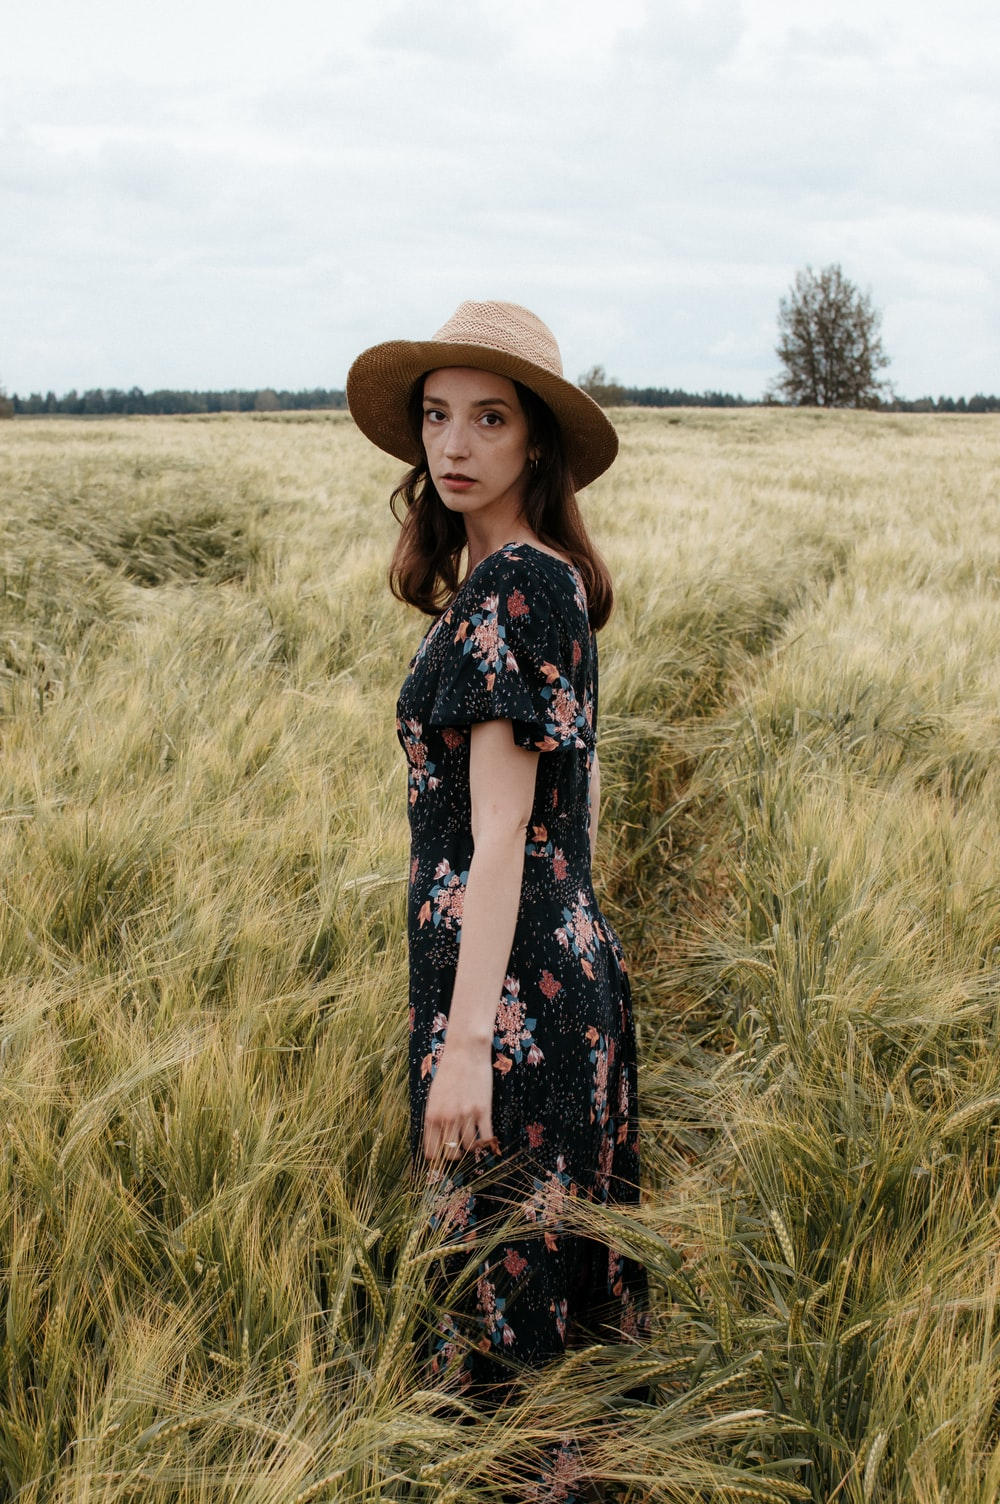 woman in black and white floral dress wearing brown straw hat standing on green grass field